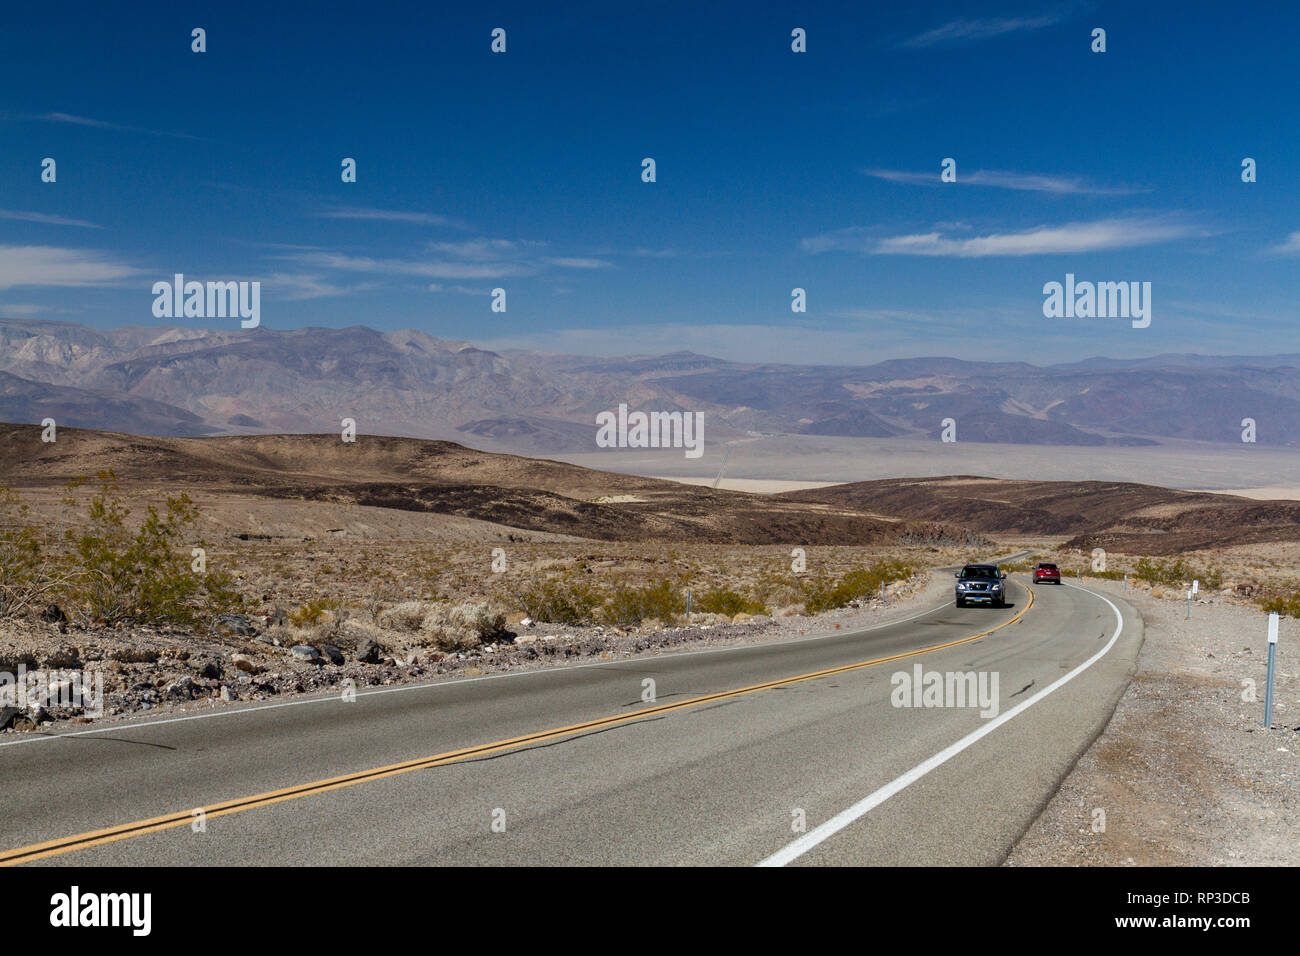 View approx west on California State Route 190 in the direction of Panamint Springs, Death Valley National Park, California, United States. Stock Photo